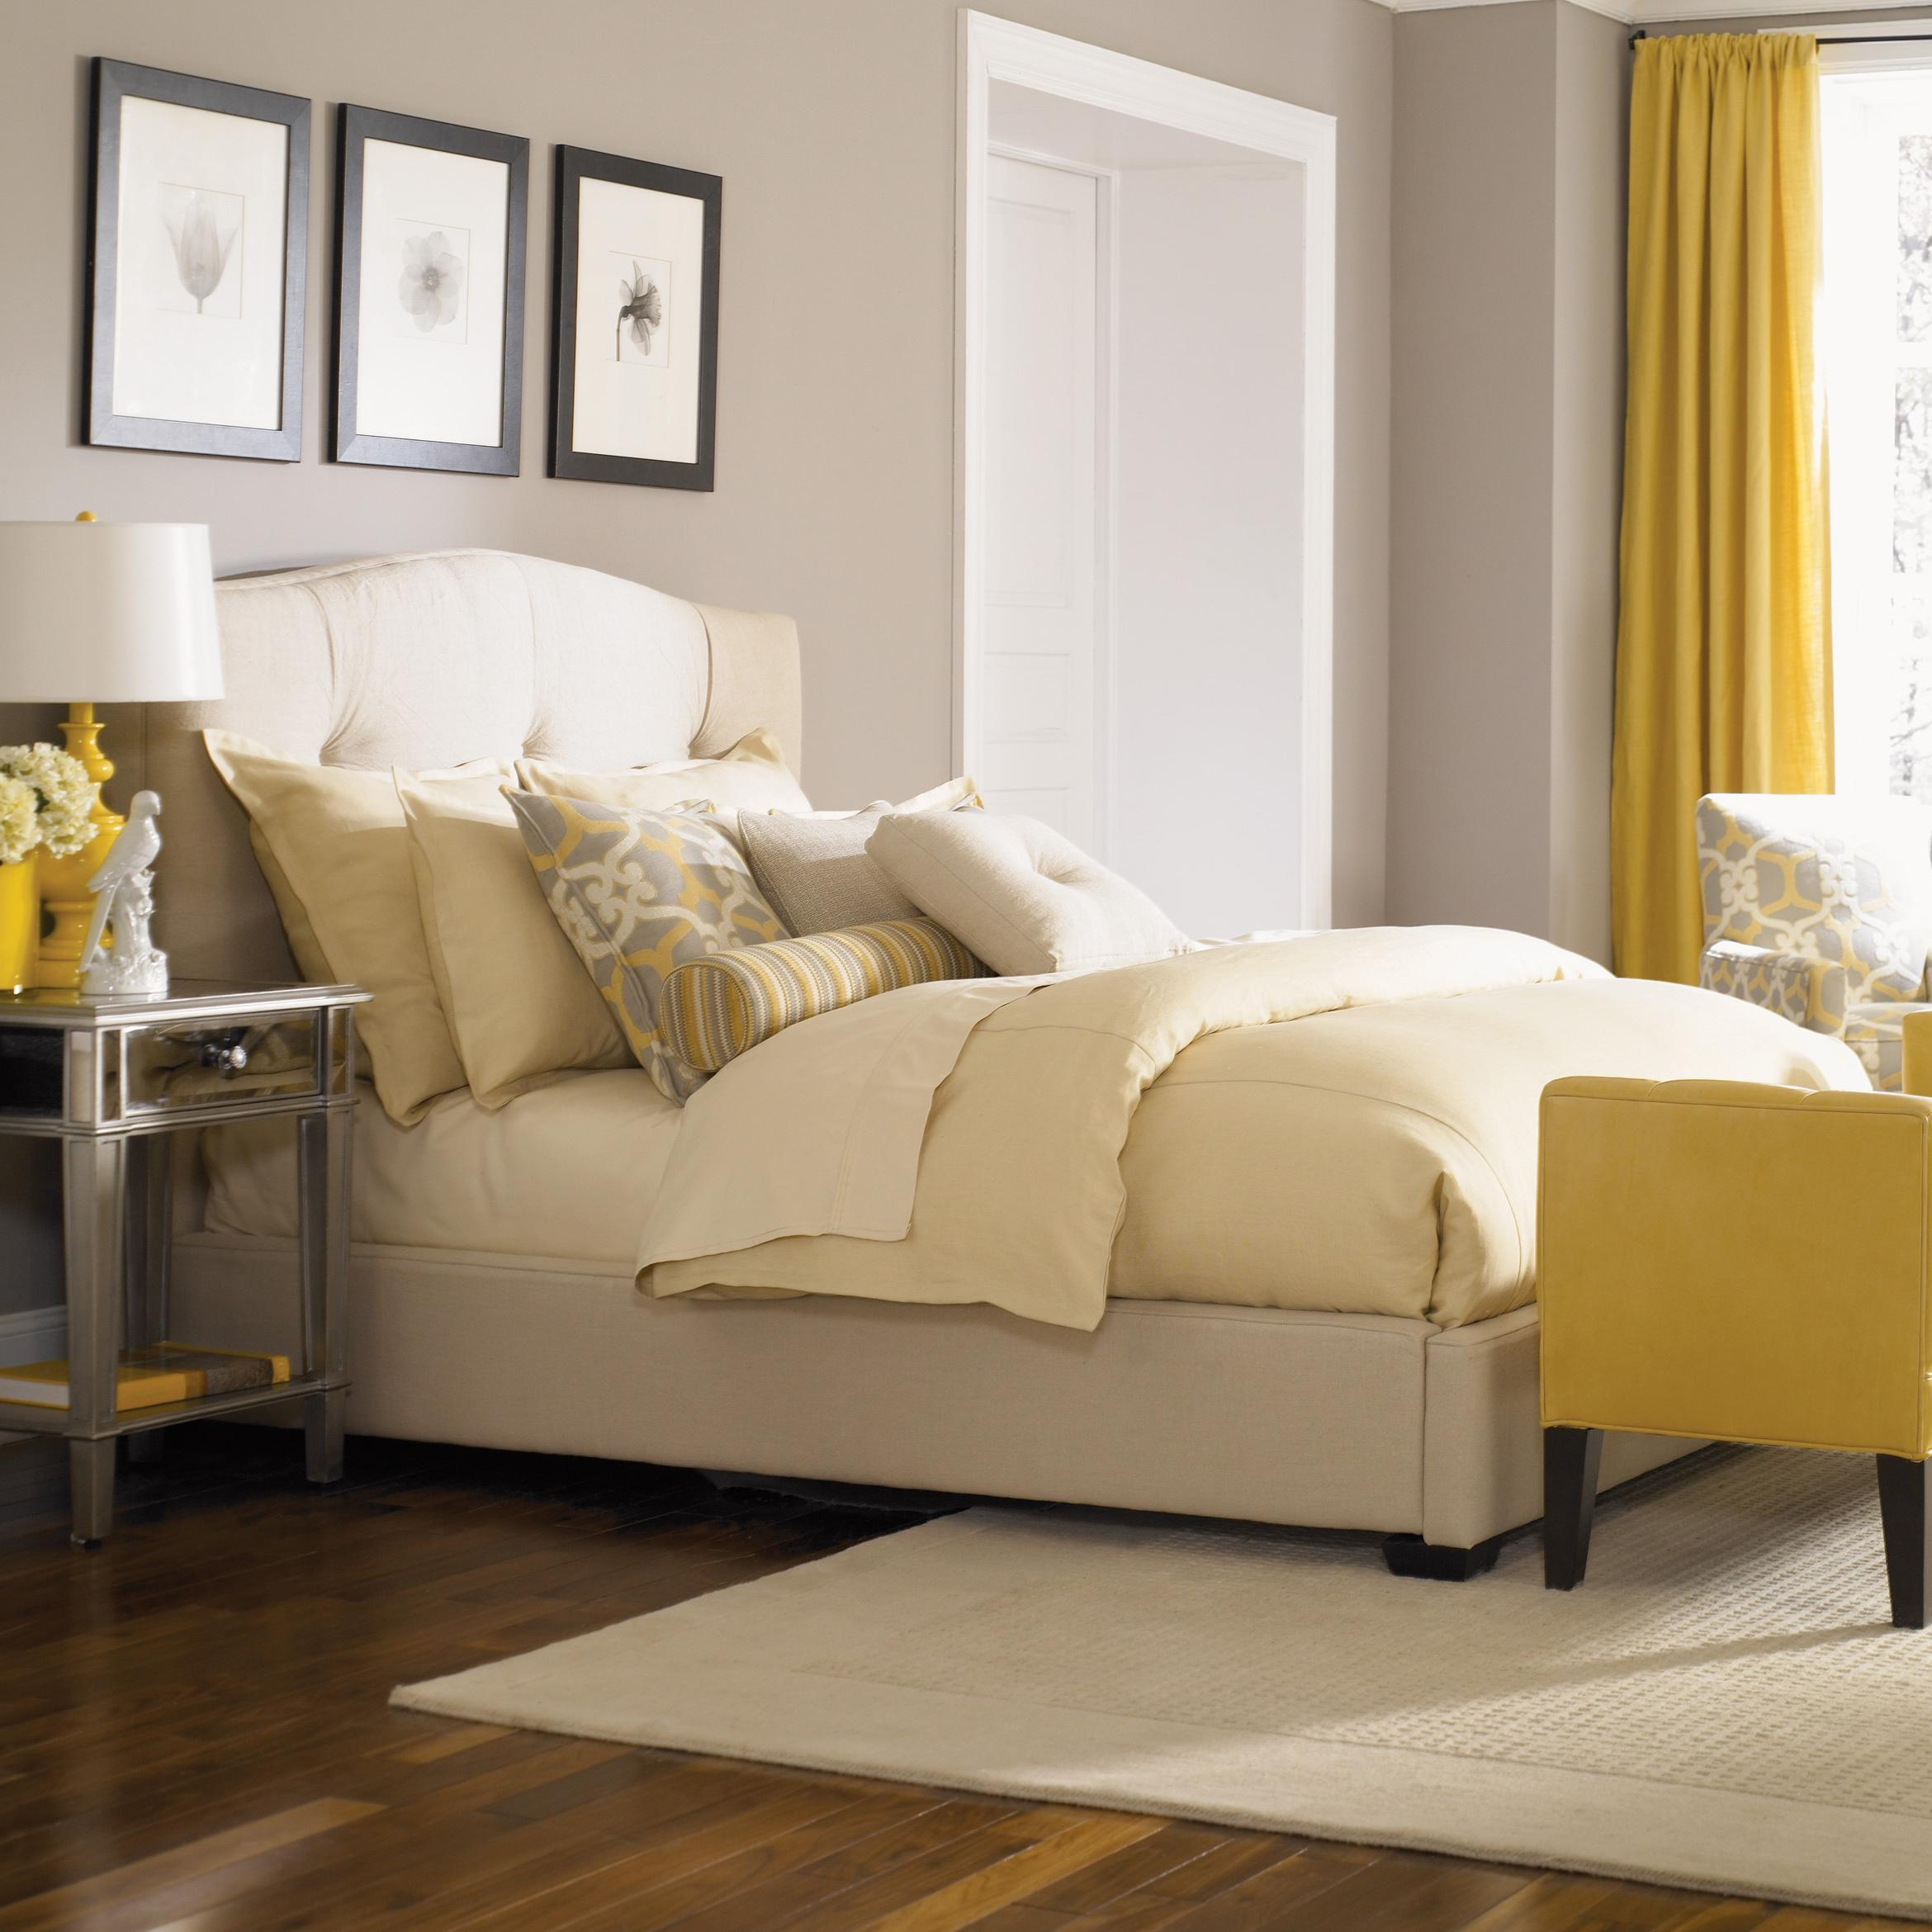 Bergman California King Upholstered Bed  at Williams & Kay